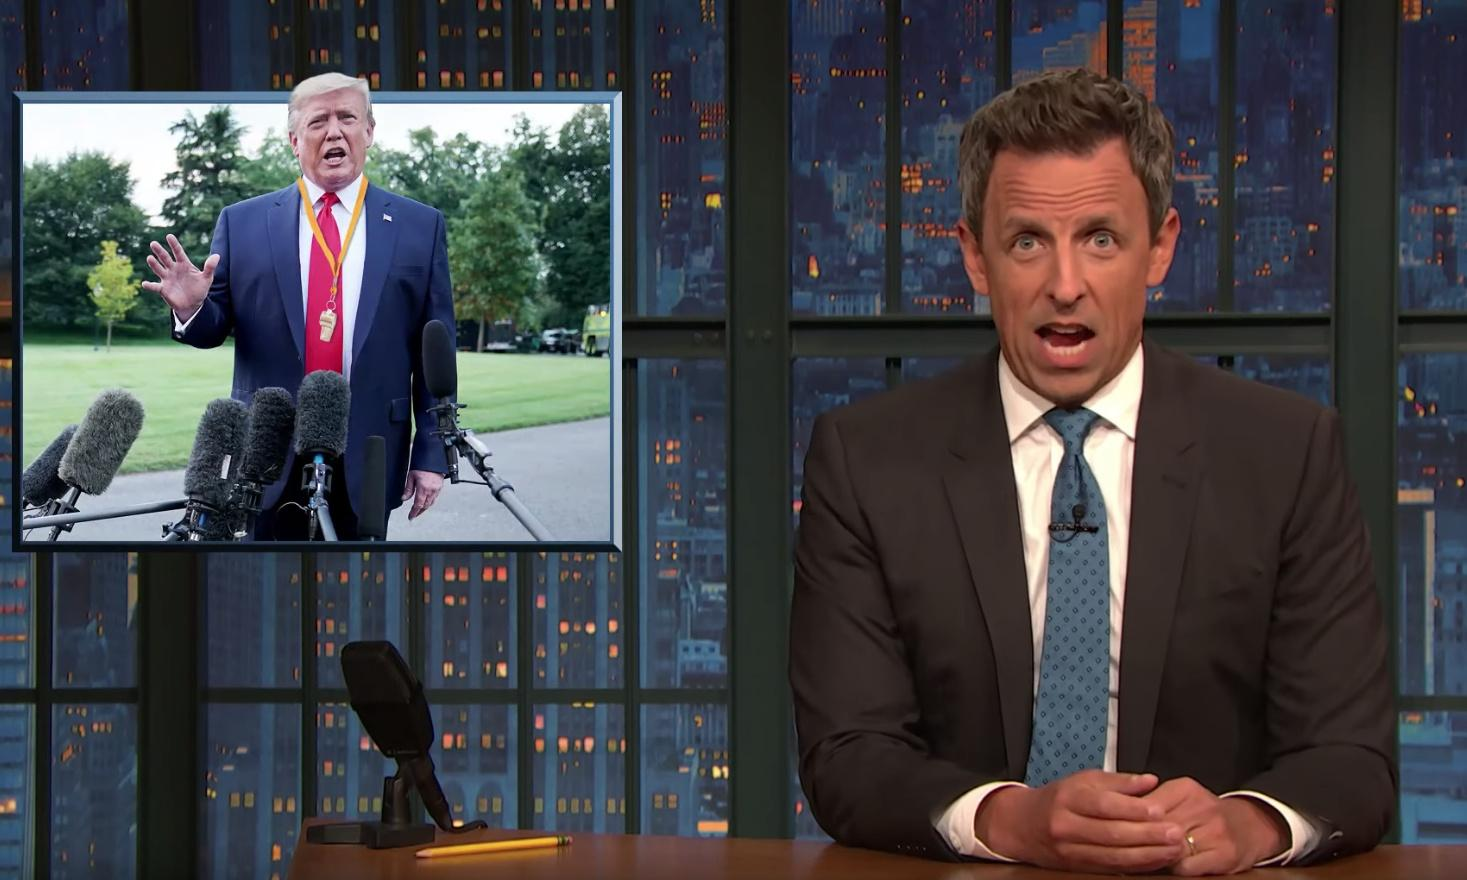 Seth Meyers on Trump: 'He basically just blew the whistle on himself'